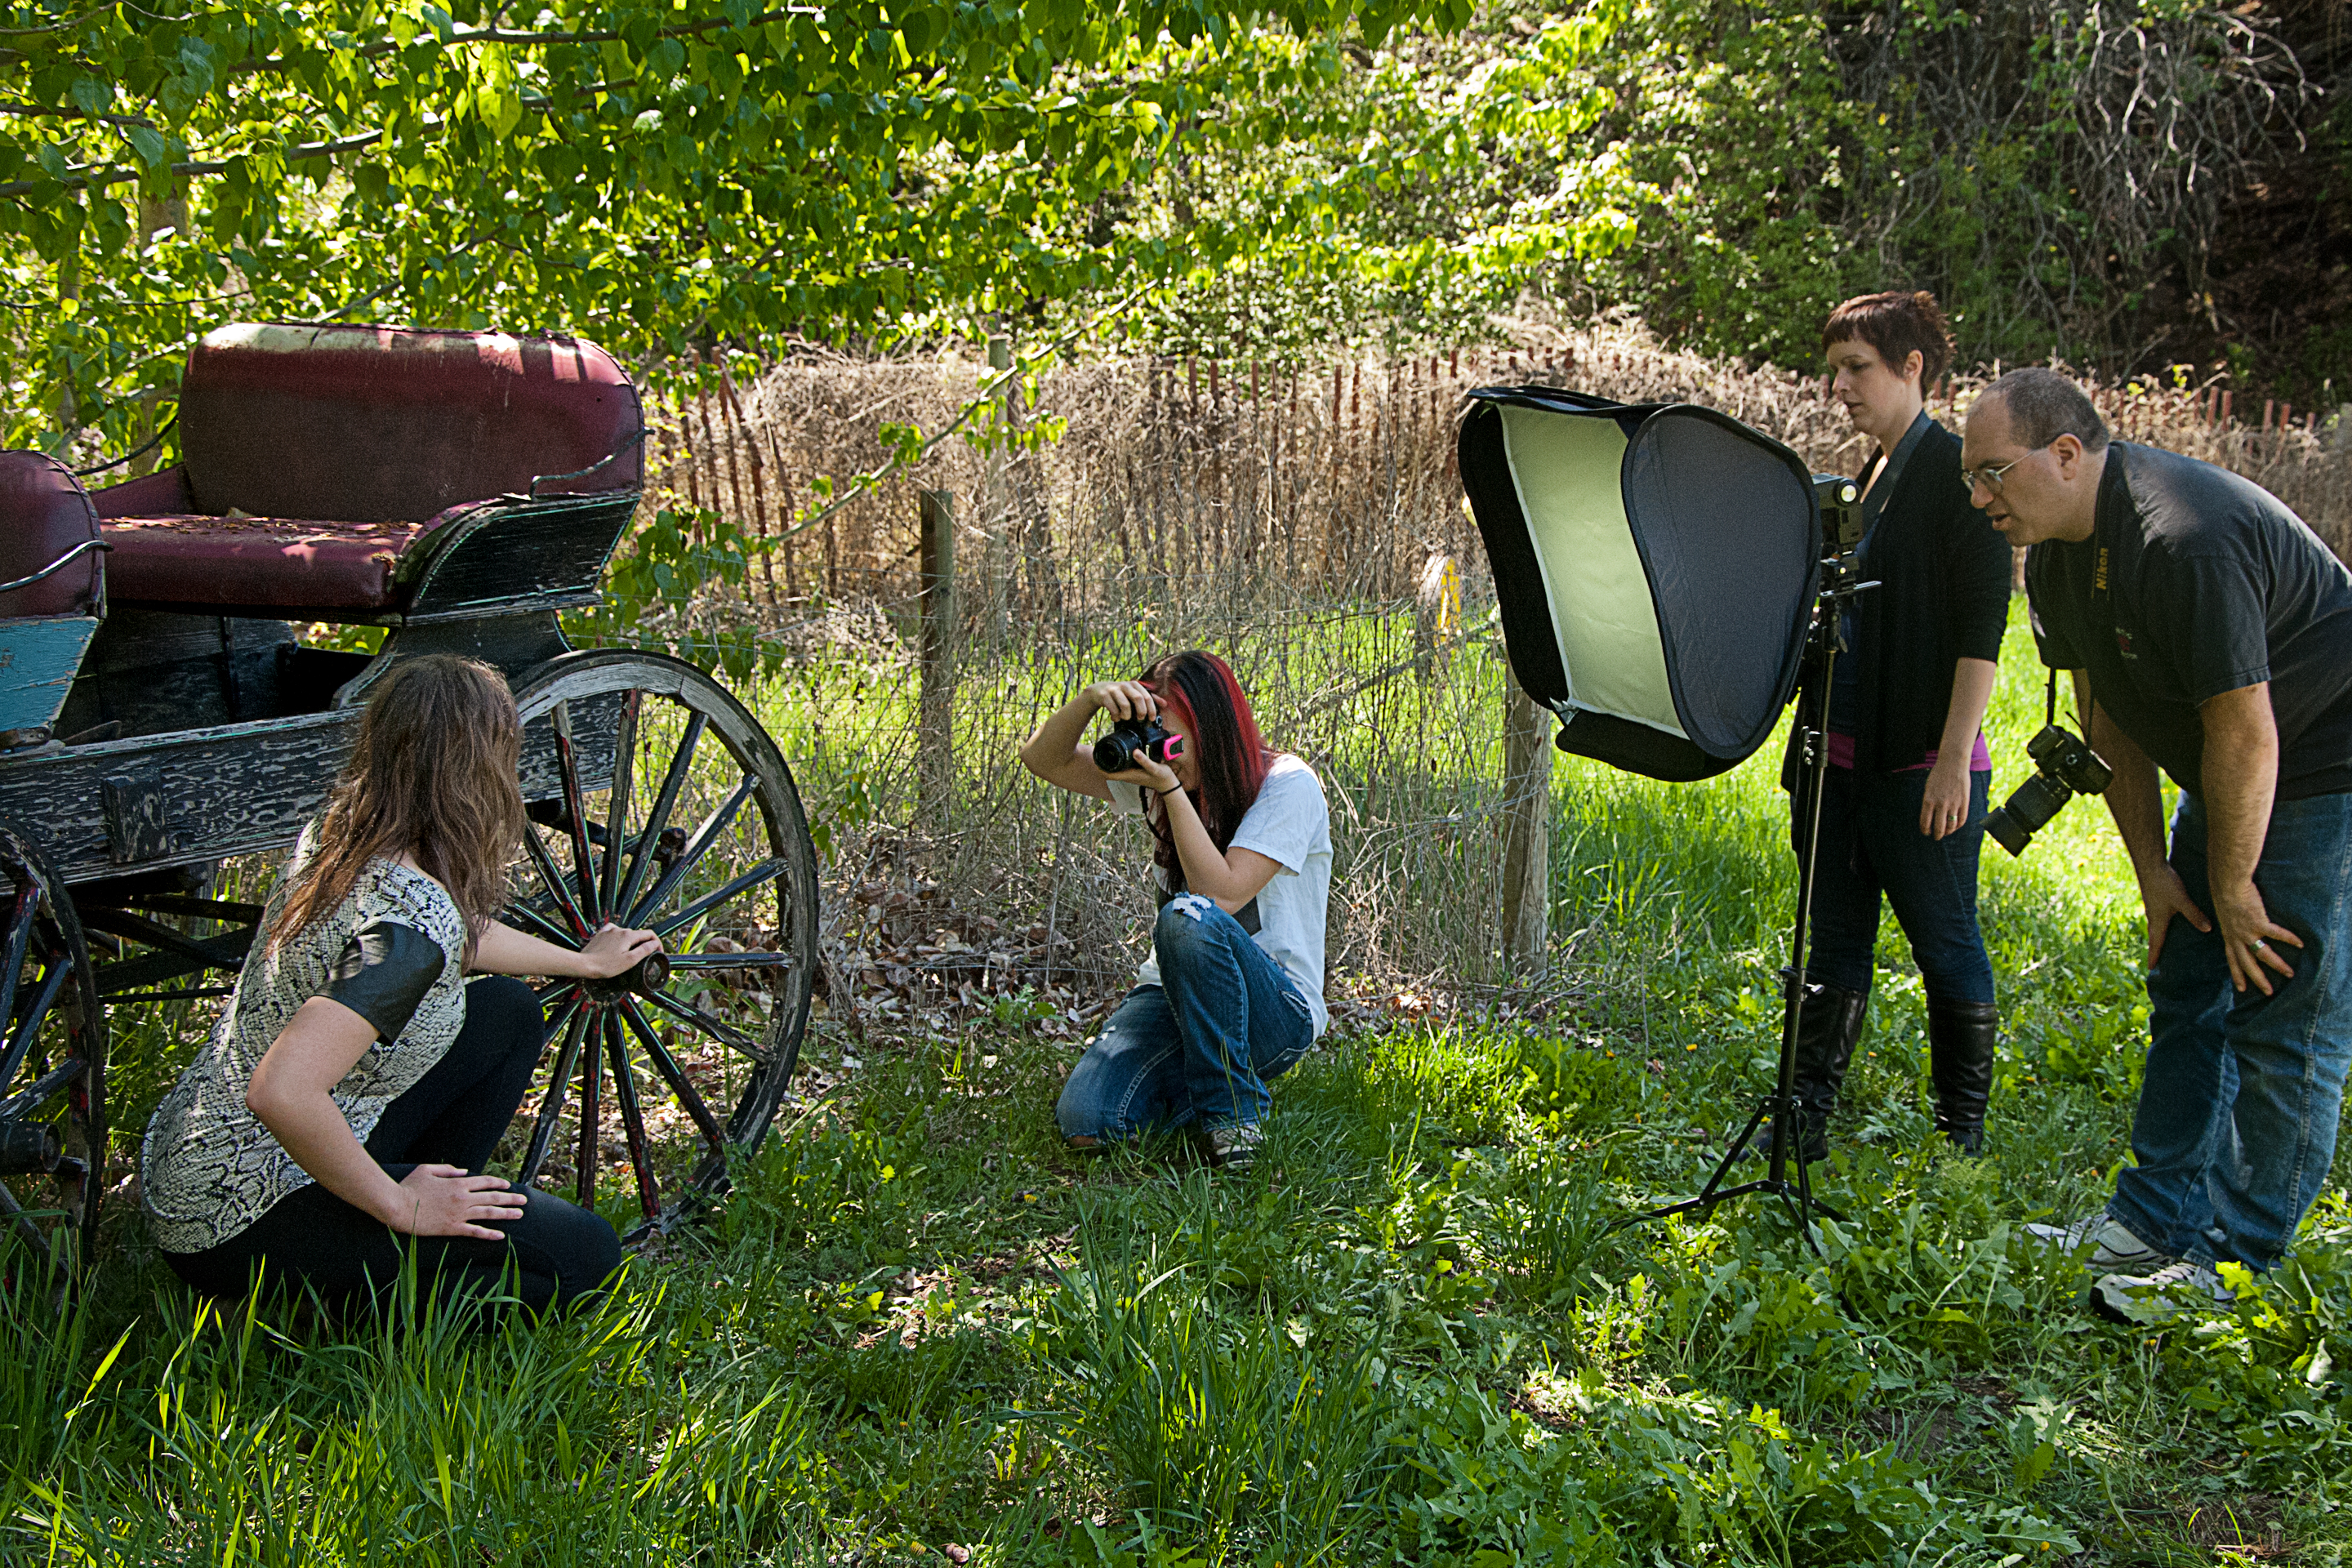 One more outdoor lighting workshop enmanscameras blog kamloops outdoor shooting e softbox by the buggy workwithnaturefo